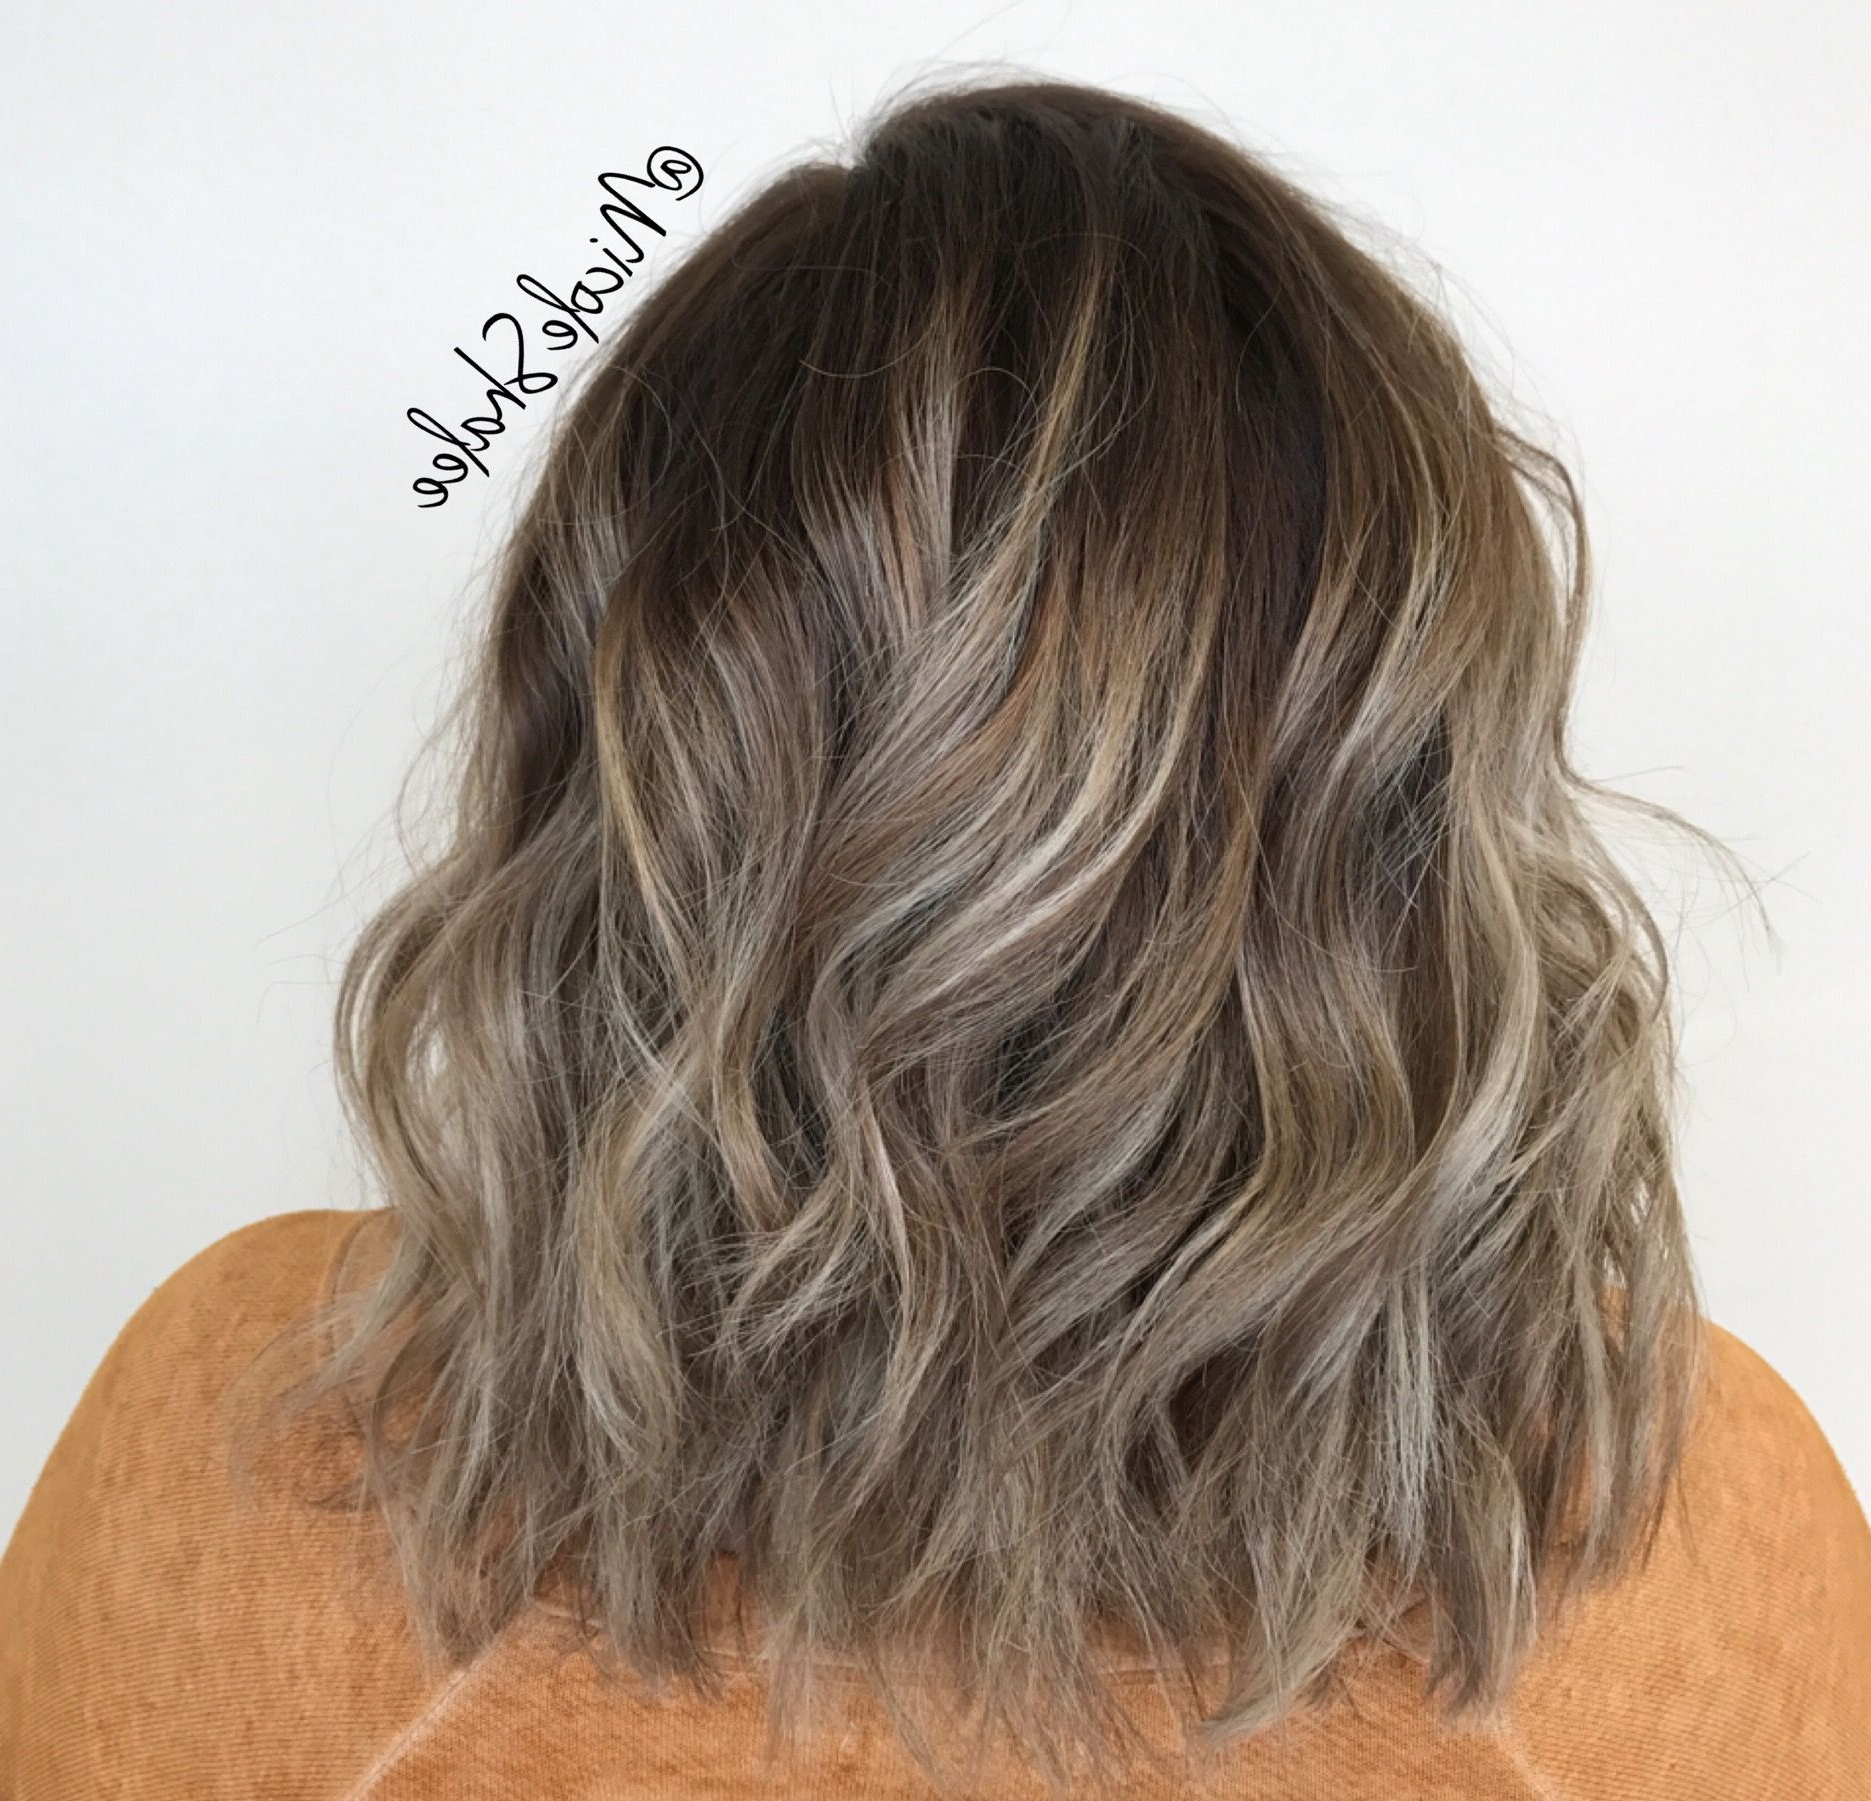 Well Liked Textured Bronde Bob Hairstyles With Silver Balayage Inside Shadow Root, Smudge Root, Balayage, Warm Highlights, Long (View 5 of 20)